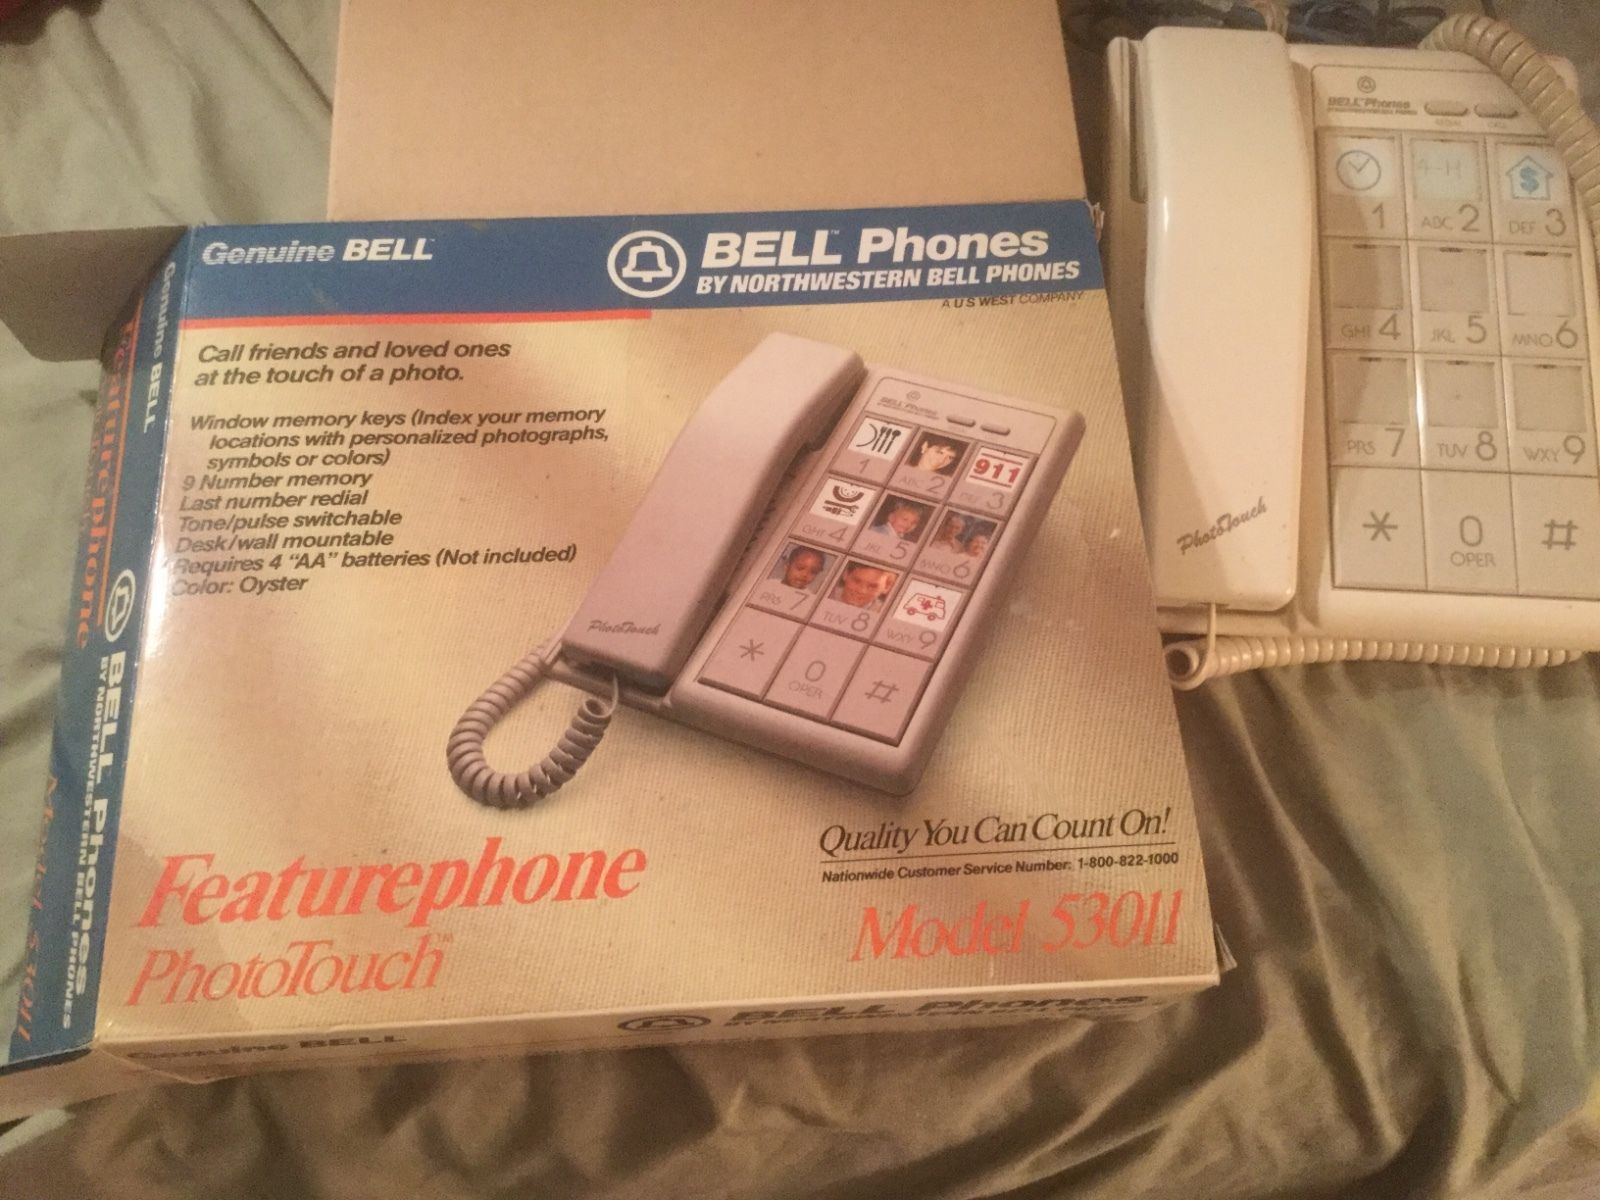 Bell Phones Model 53011 by Northwestern Bell and 50 similar